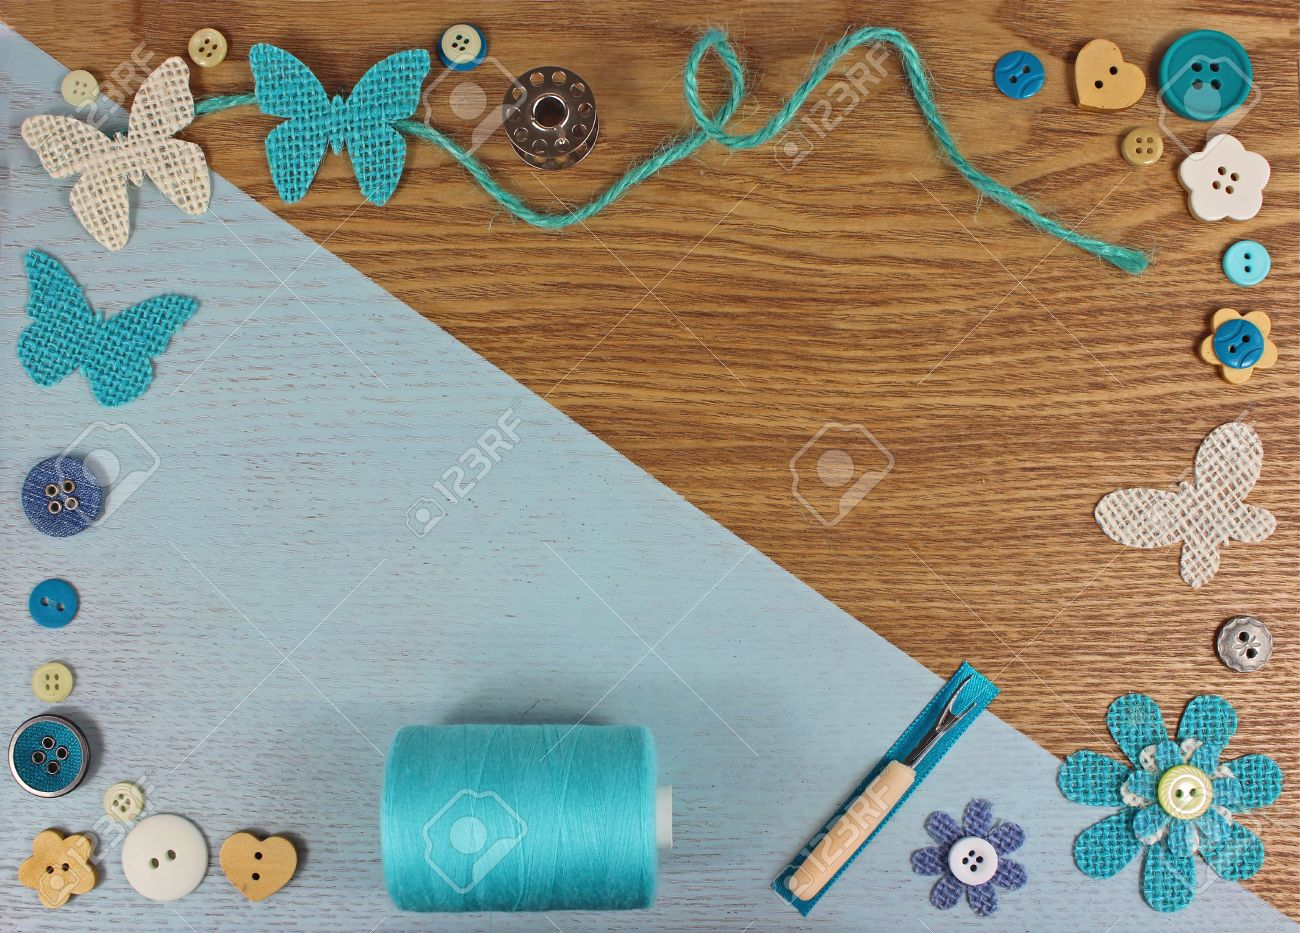 Free Download Turquoise Haberdashery Craft Background Stock Photo Picture And 1300x933 For Your Desktop Mobile Tablet Explore 31 Crafts Backgrounds Crafts Wallpaper Wallpaper Crafts Pinterest Wallpaper Crafts